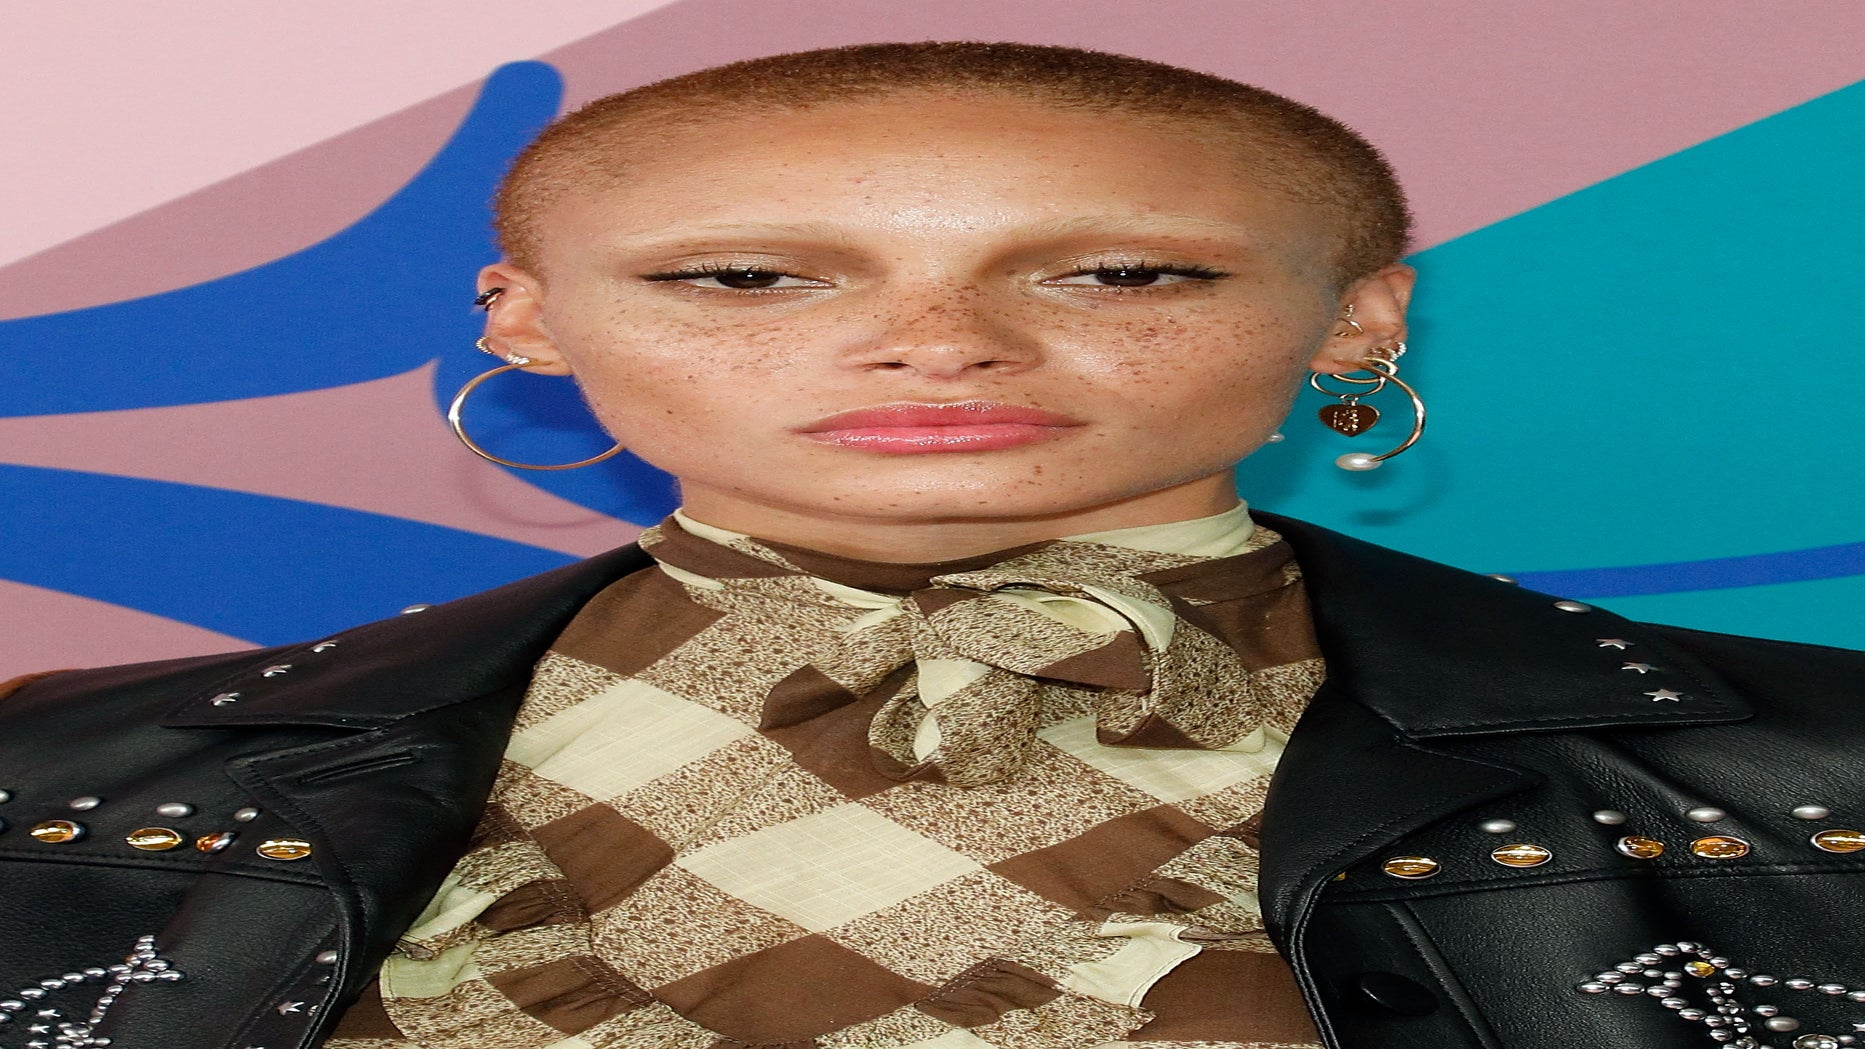 Model Adwoa Aboah Is Suing Former Management Company For Unpaid Wages